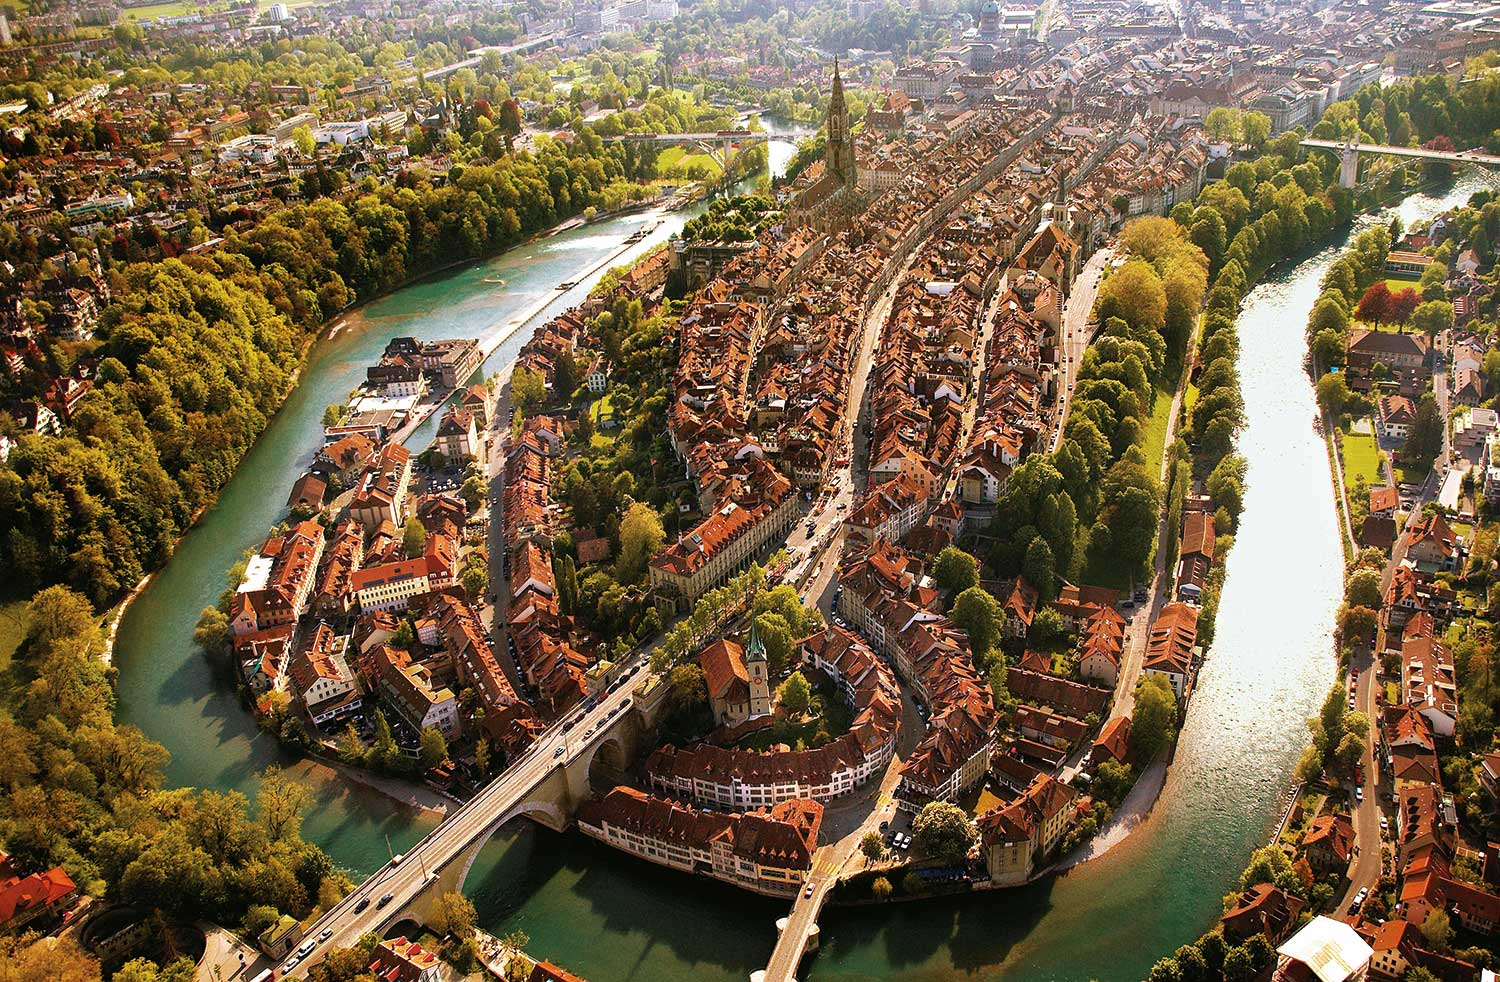 Hotels in Bern Region - Full of attractions Bern is the Swiss Federal City, the surrounding region of Bern is one of the cen